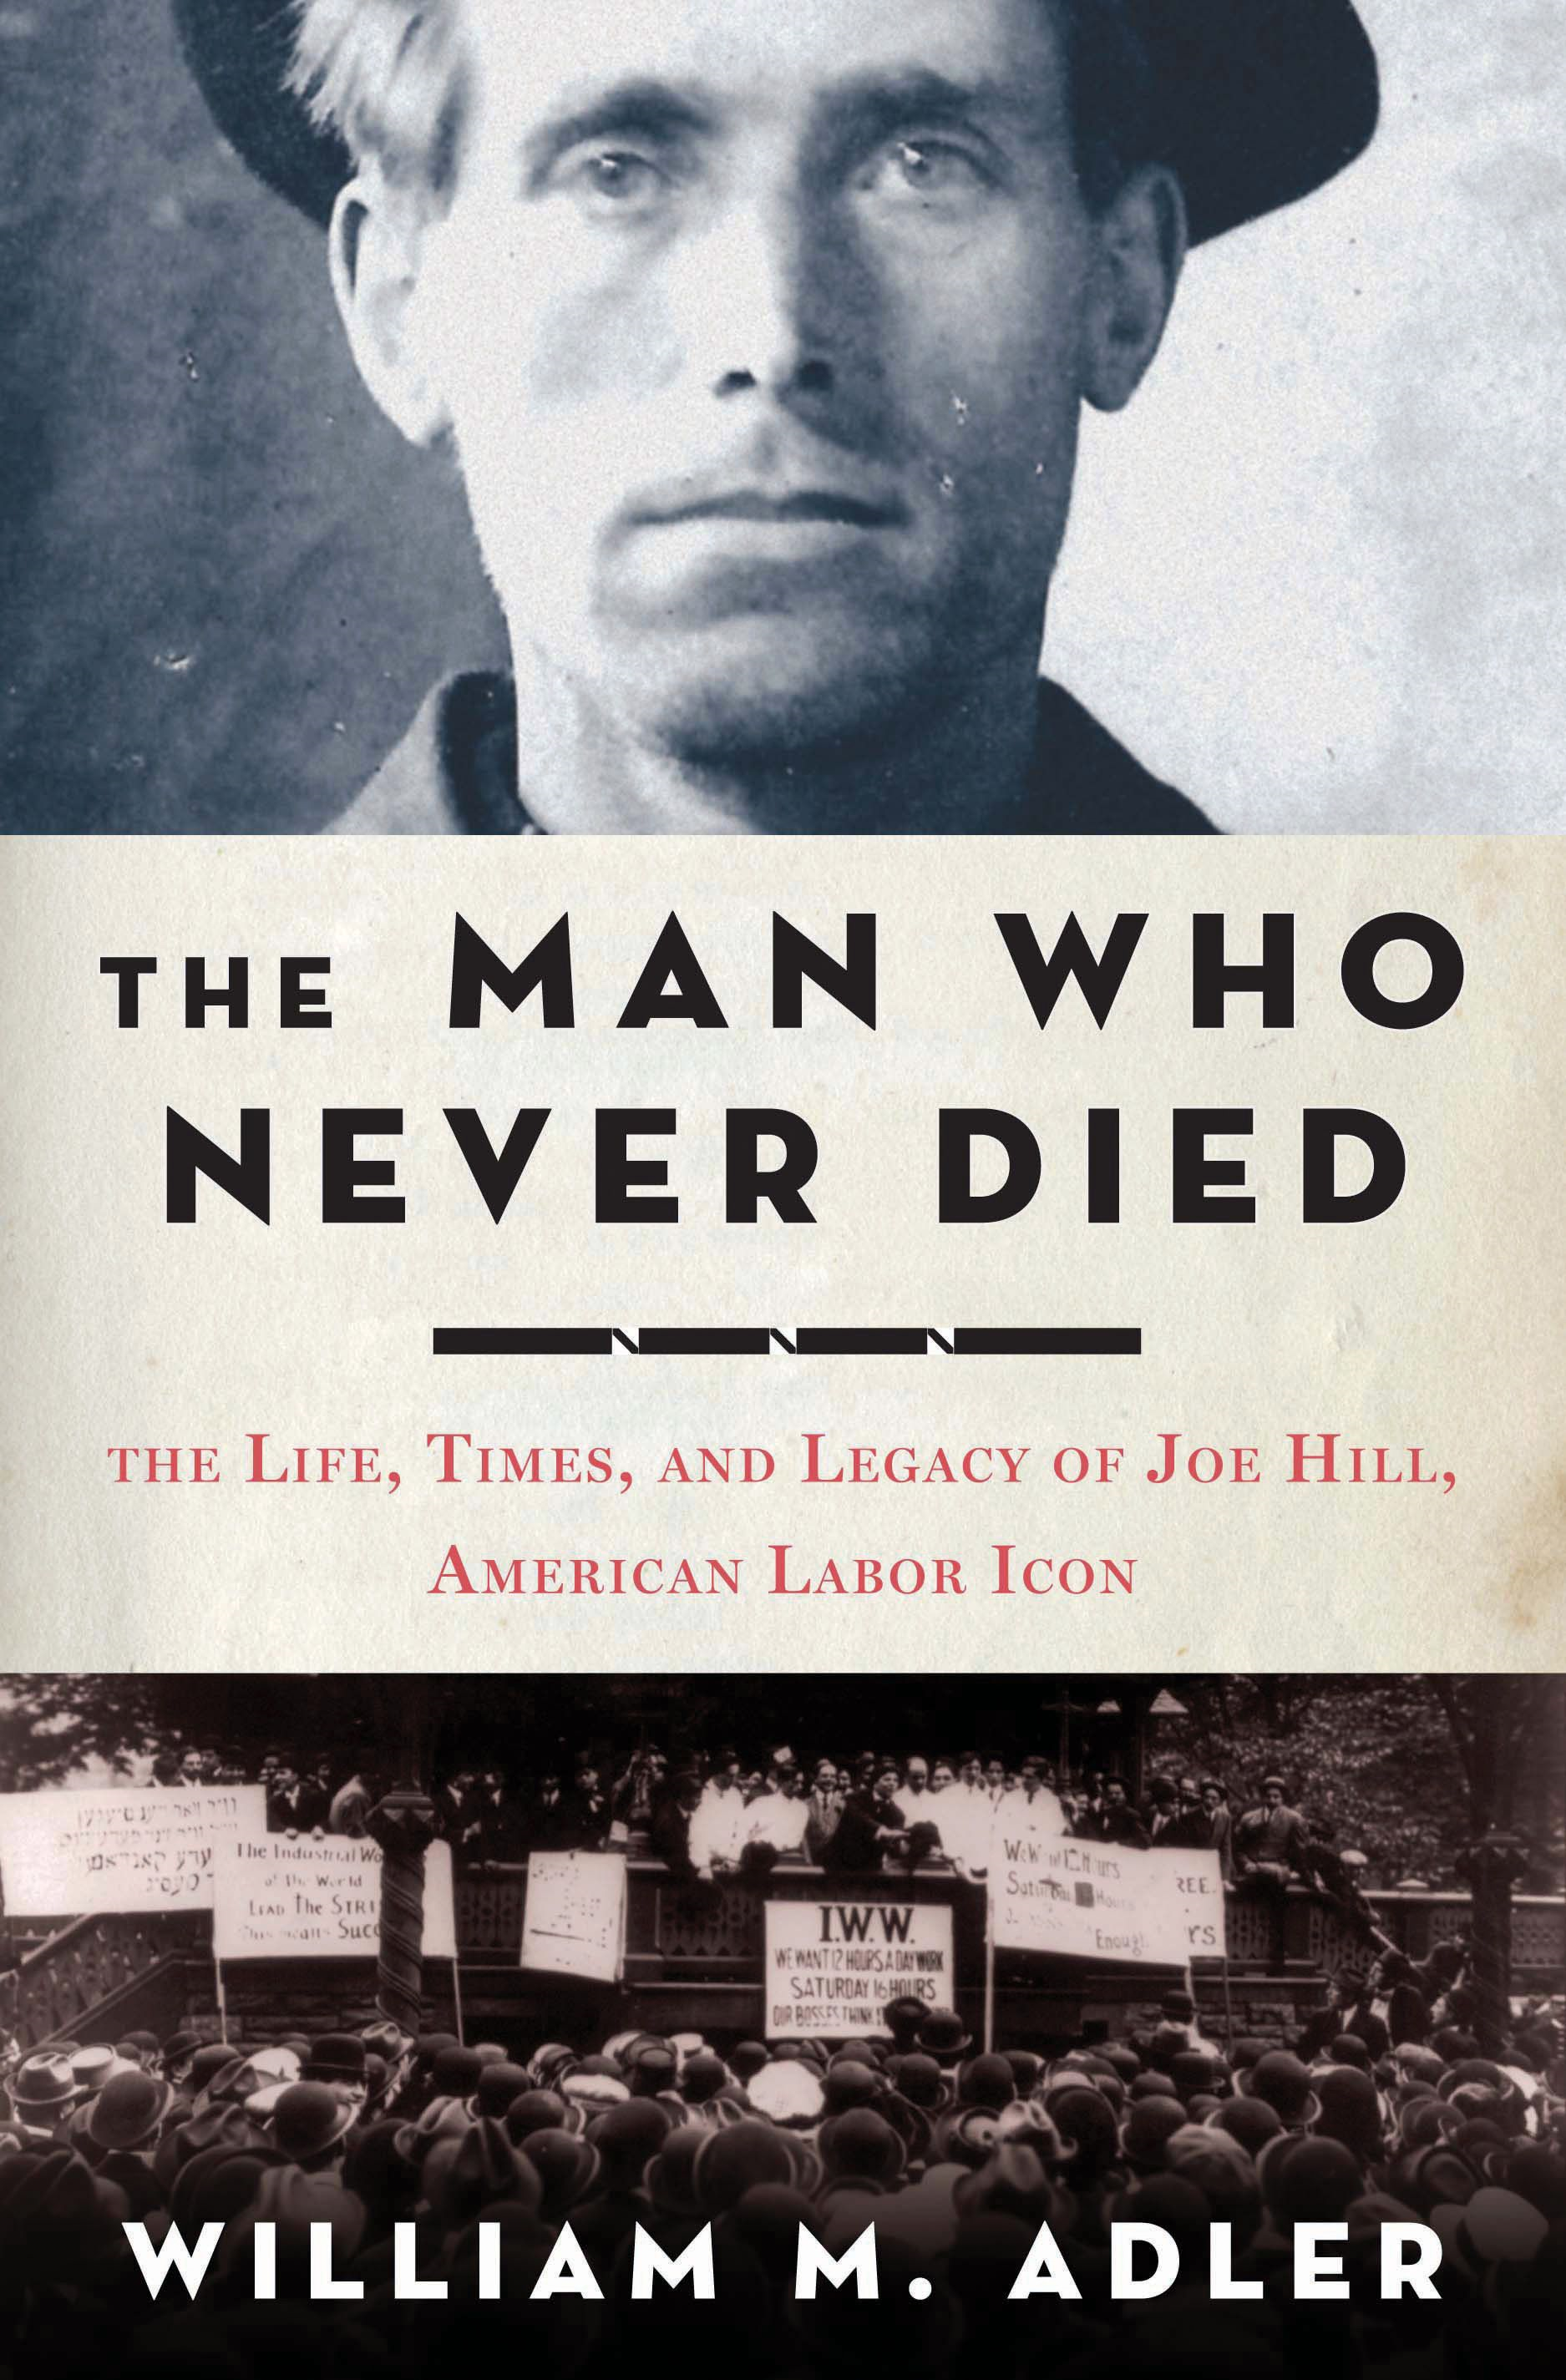 The Man Who Never Died: The Life, Times, and Legacy of Joe Hill, American Labor Icon By: William M. Adler